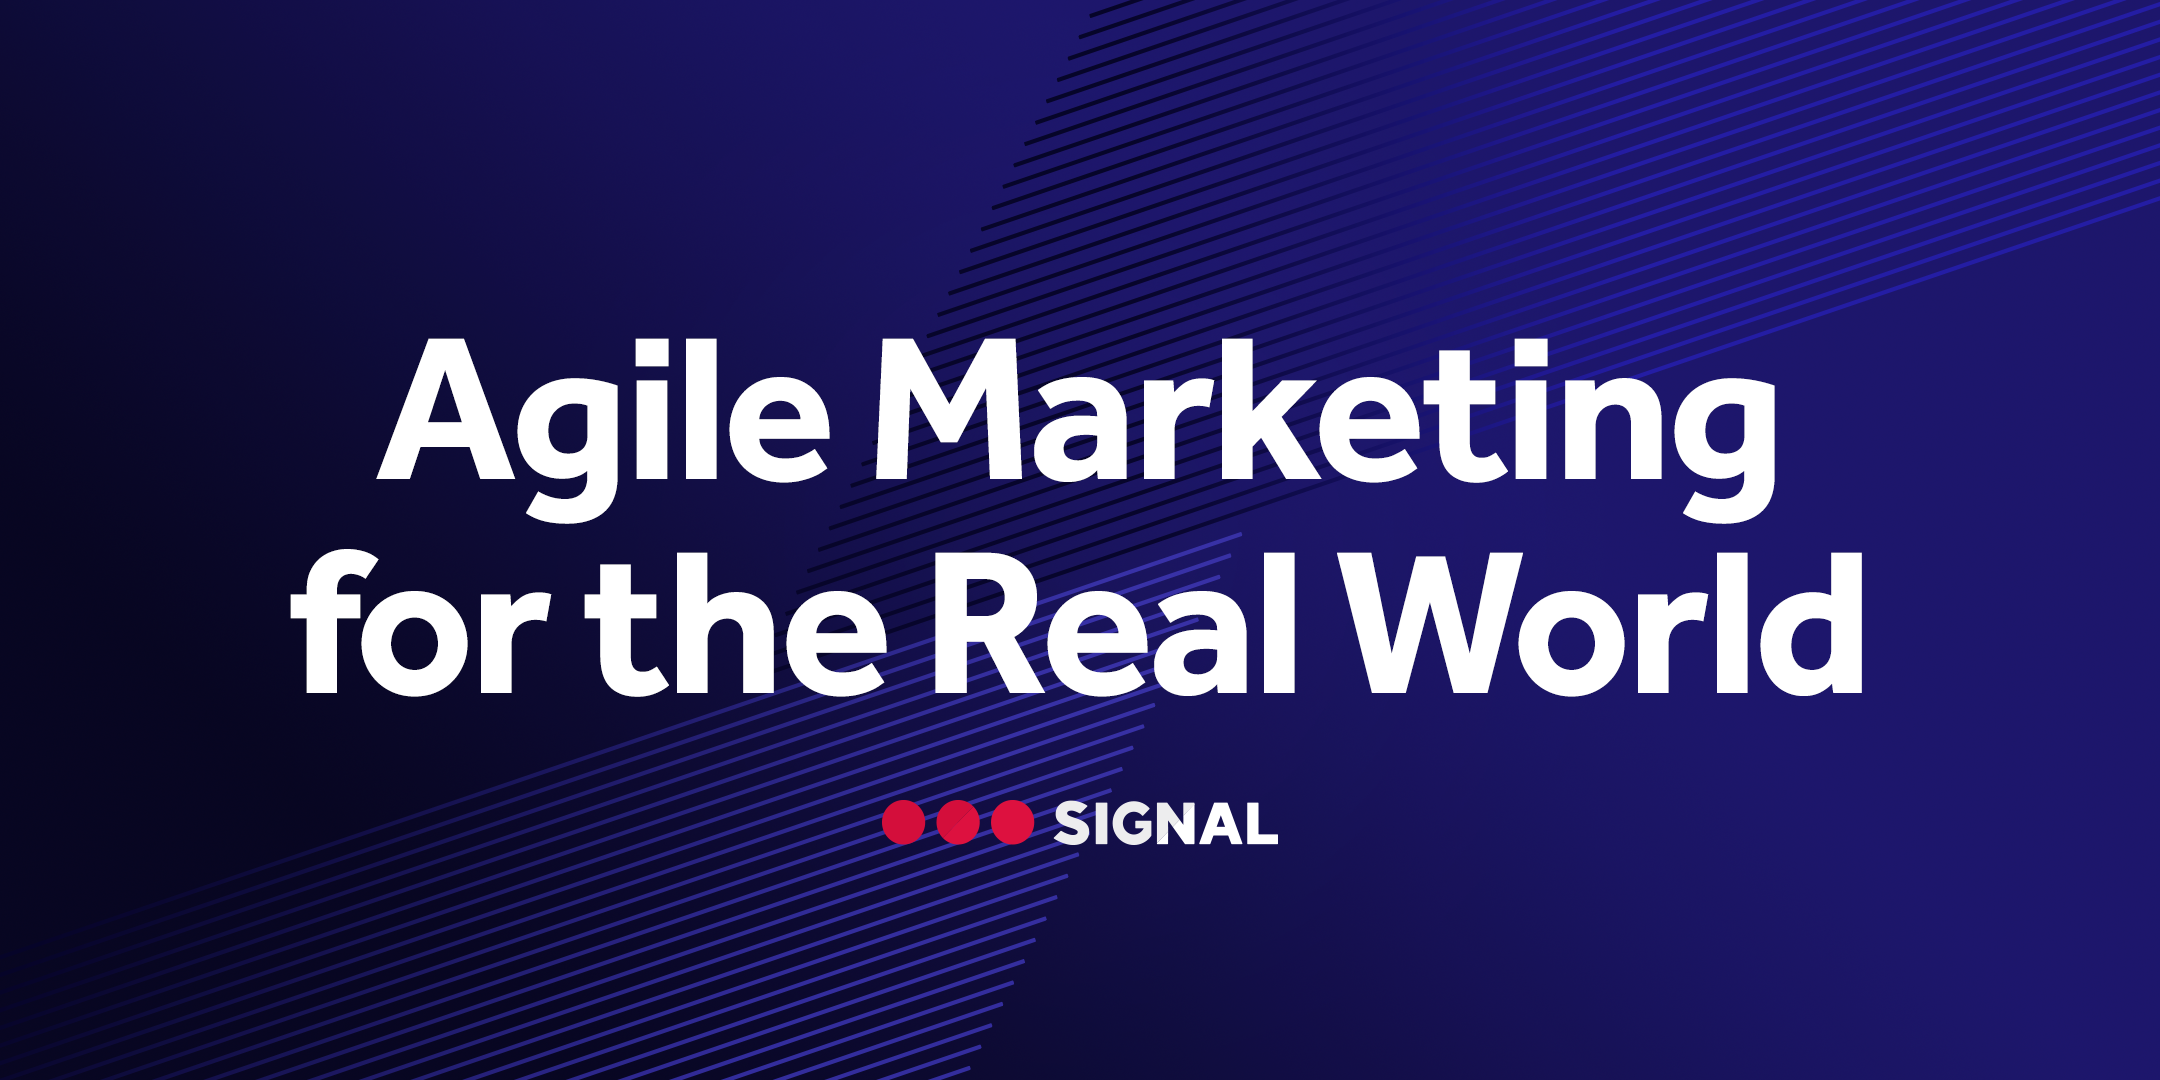 Agile Marketing for the Real World - event banner